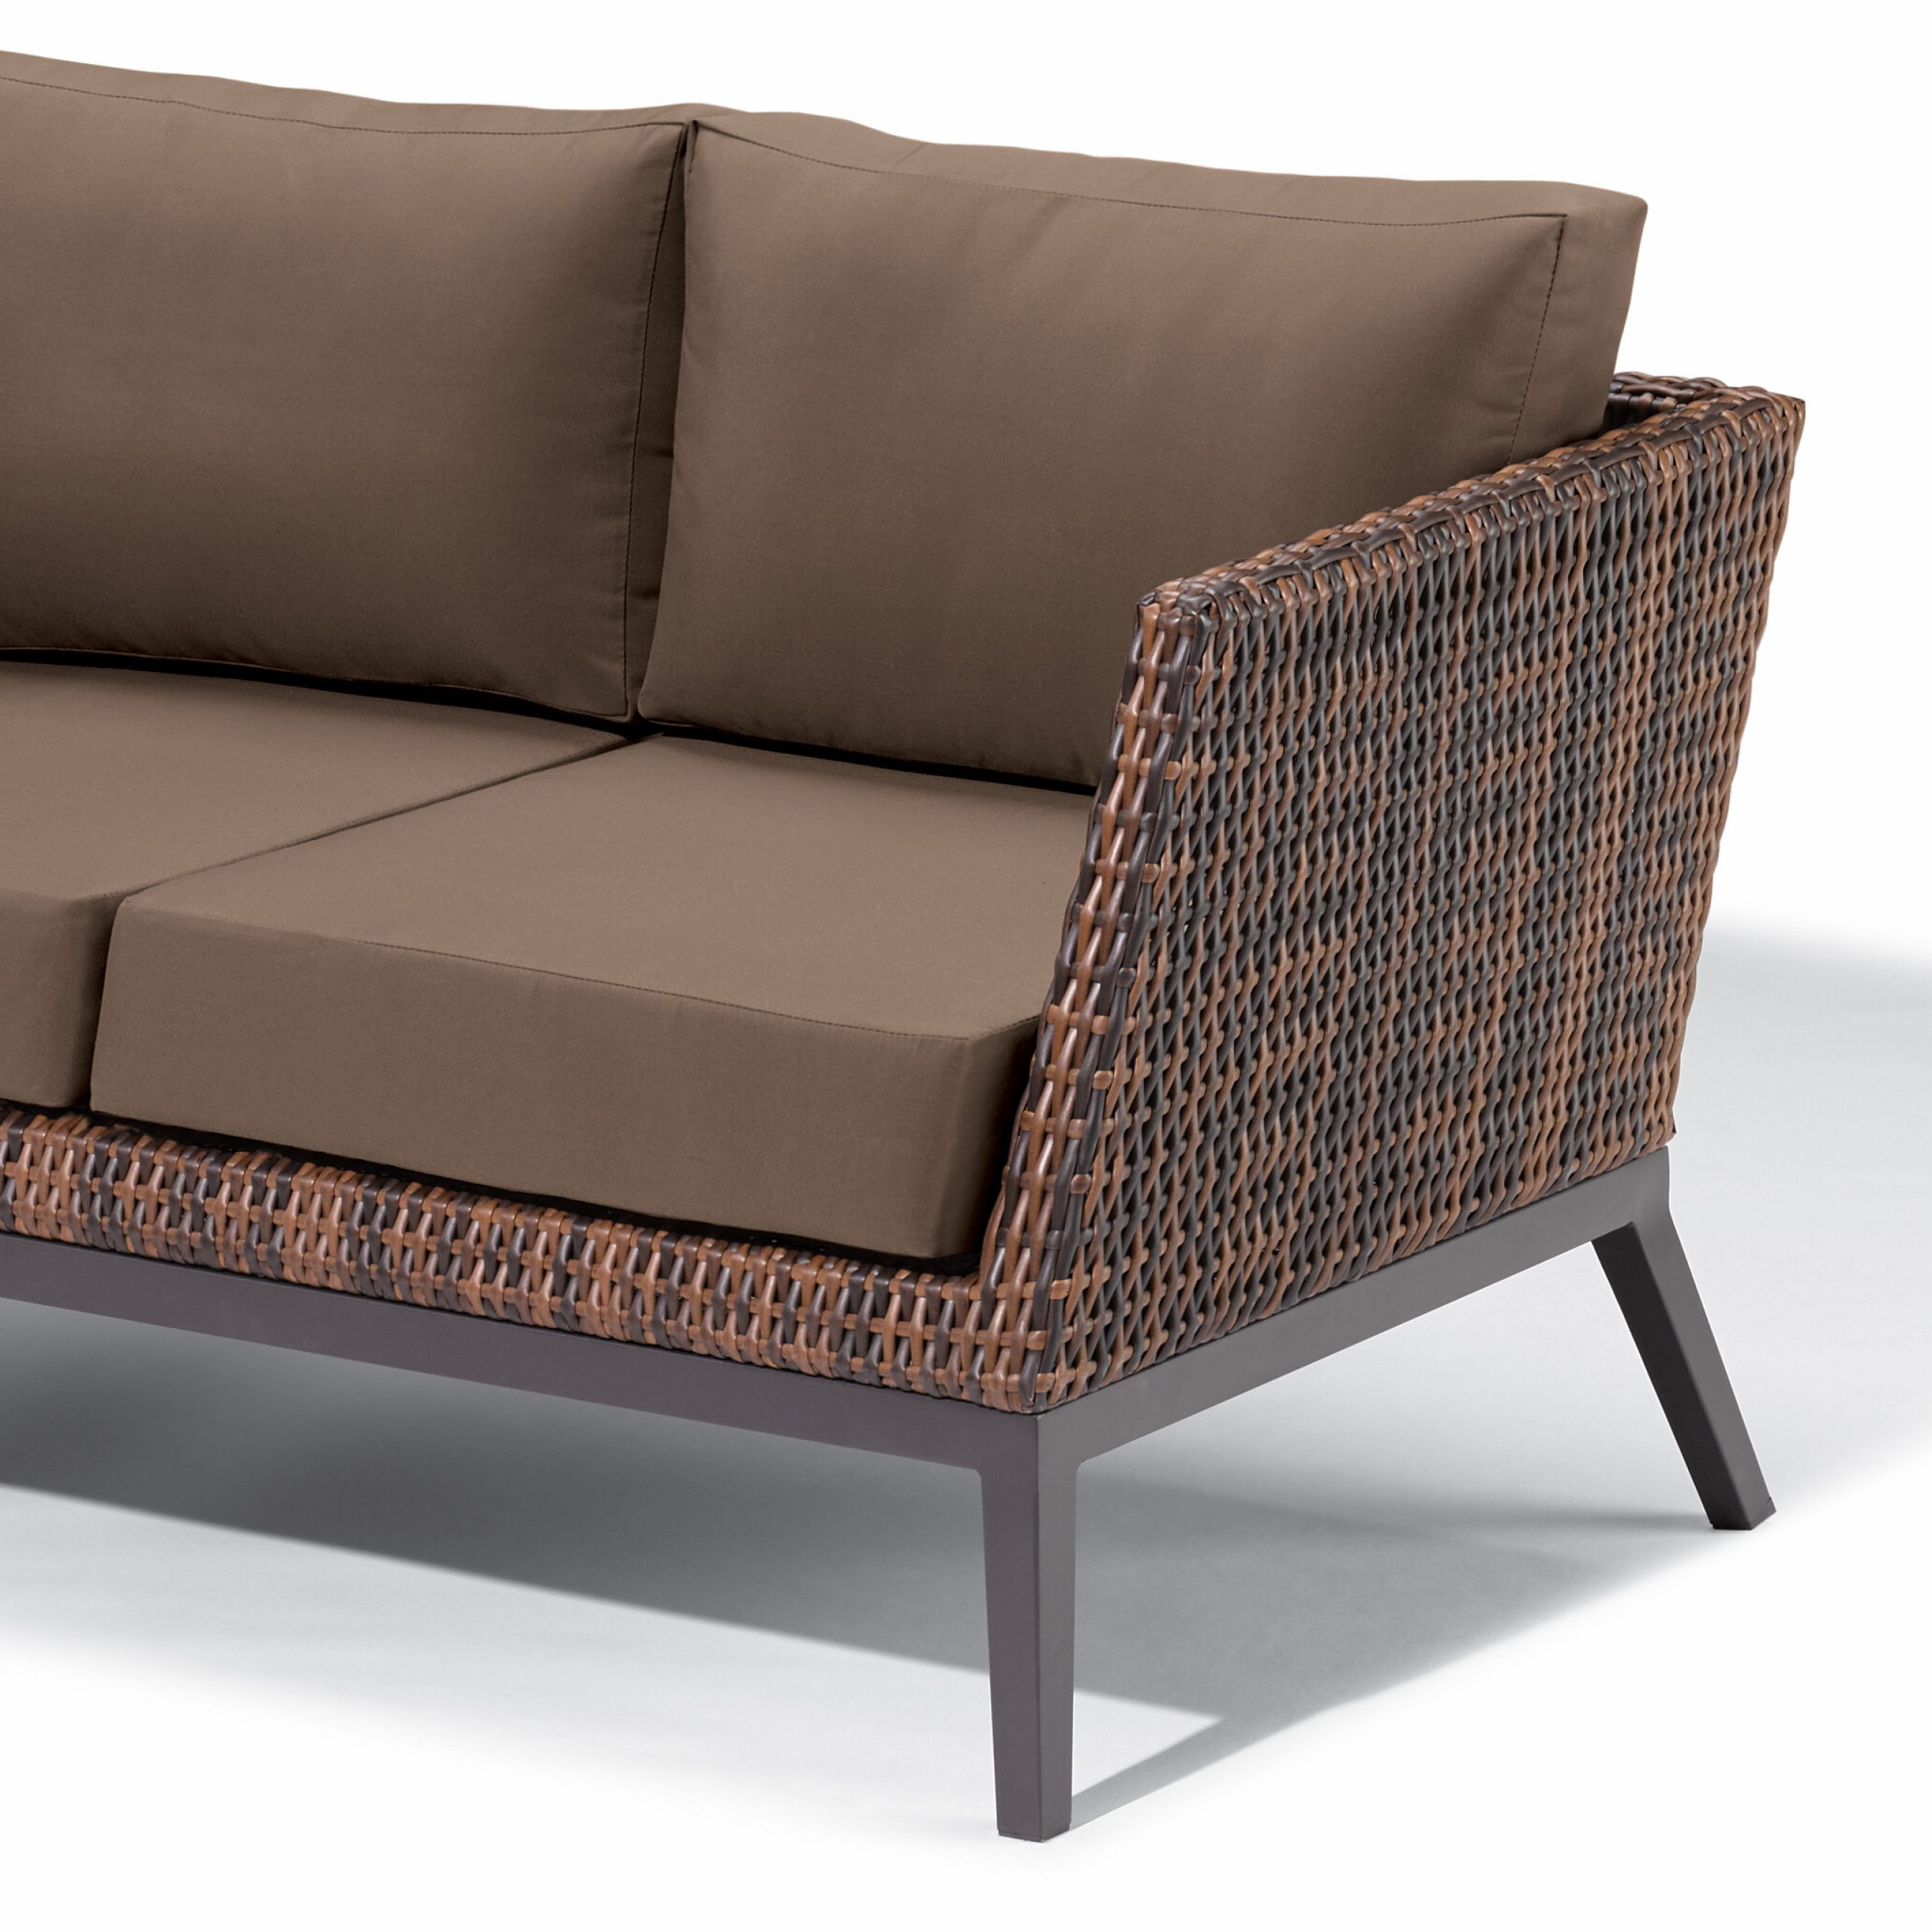 Widely Used Cammack Woven Loveseat With Cushions Intended For Saleem Loveseats With Cushions (View 24 of 25)